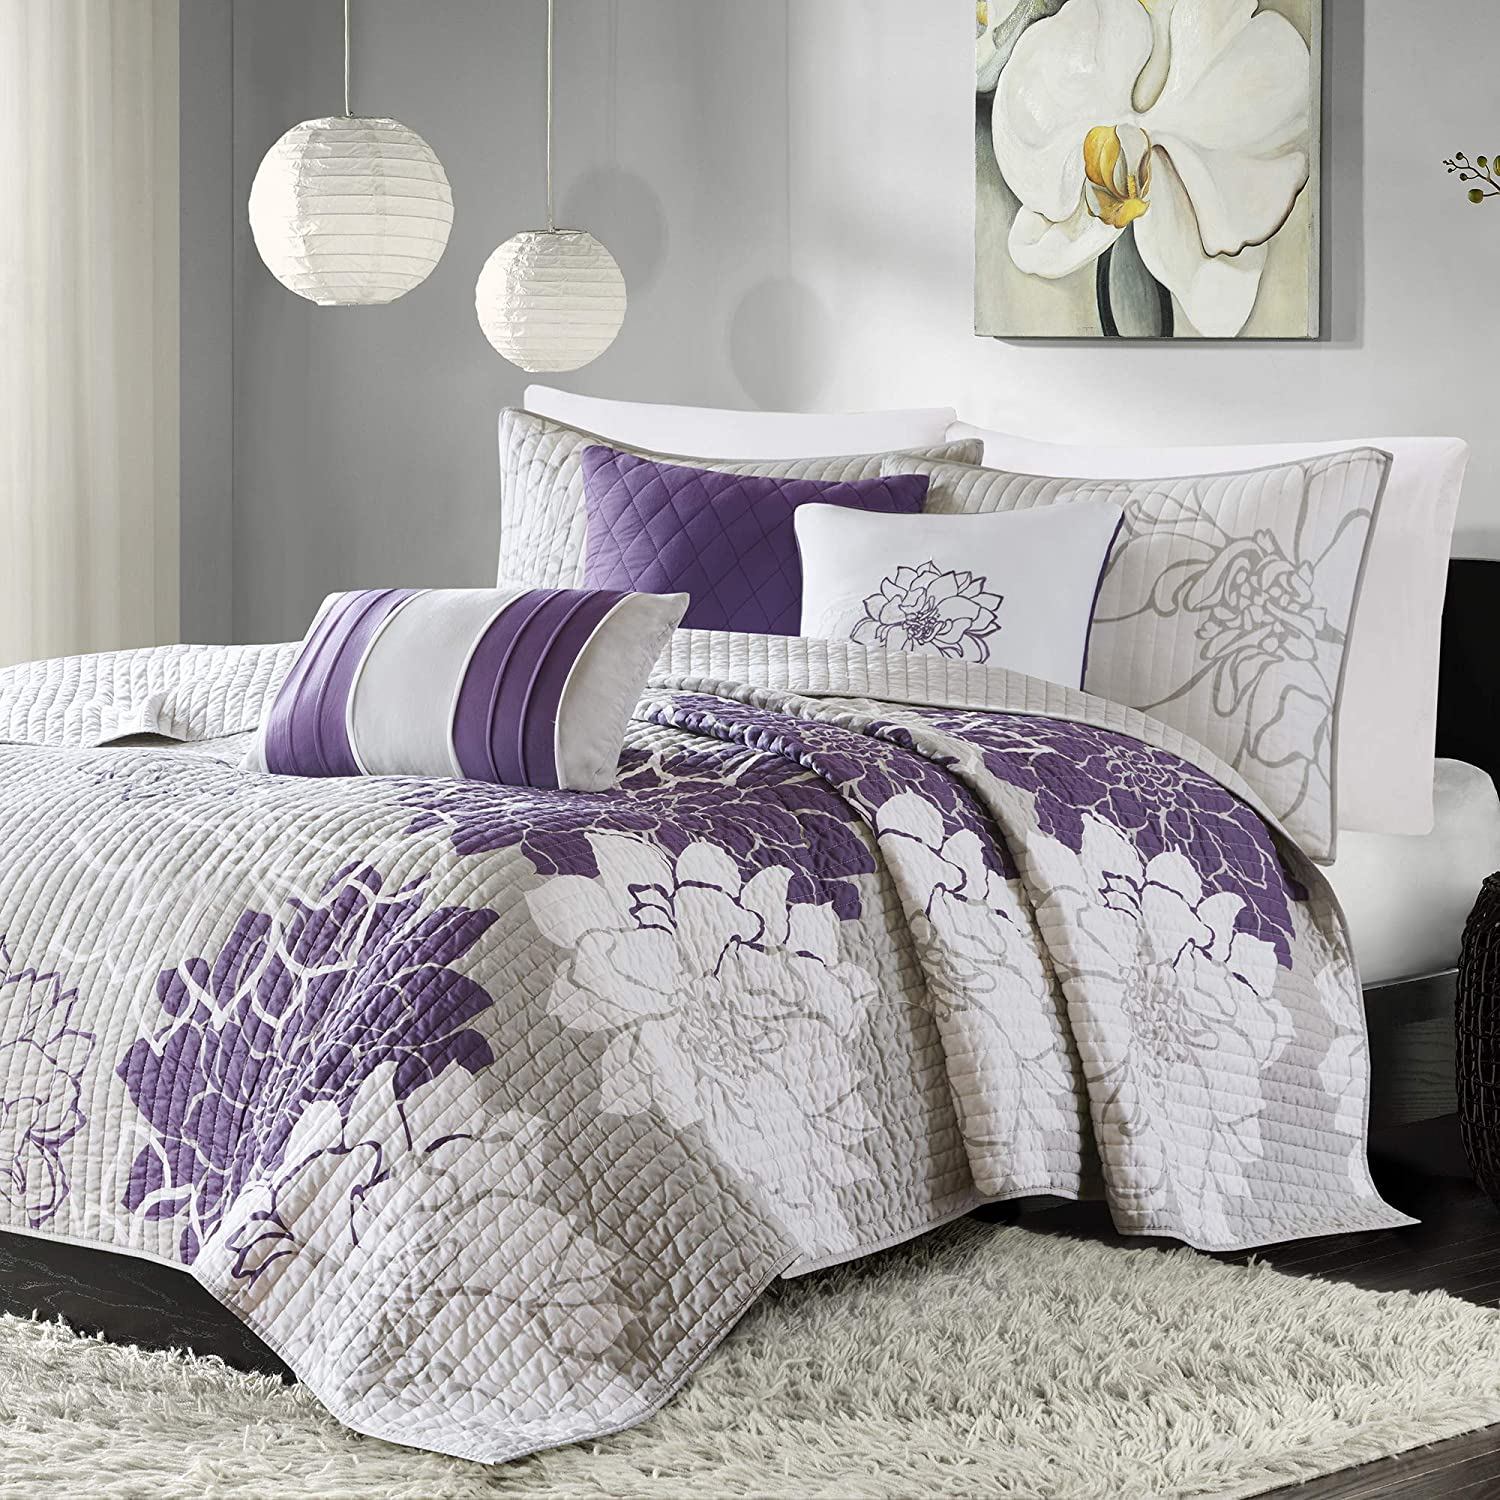 Madison Park Lola Cal King Size Set-Purple, Grey, Floral, Flowers – 6 Piece Sateen, Cotton Poly Crossweave Bed Quilted Coverlet, King King